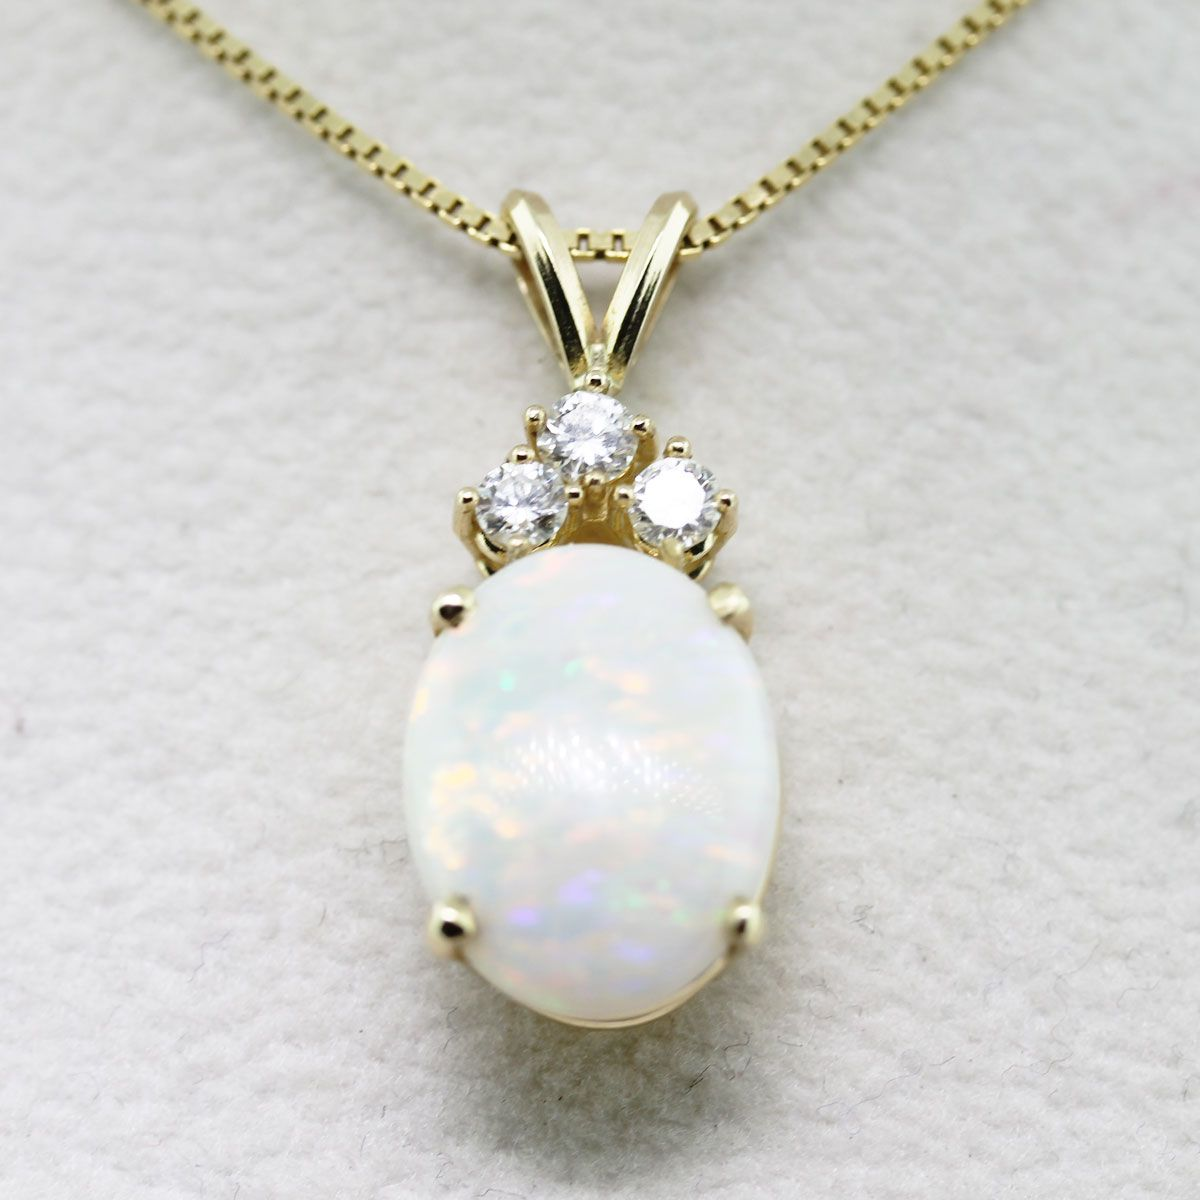 tsavorite s once products diamond australian pendant necklace gold a opal white upon in with